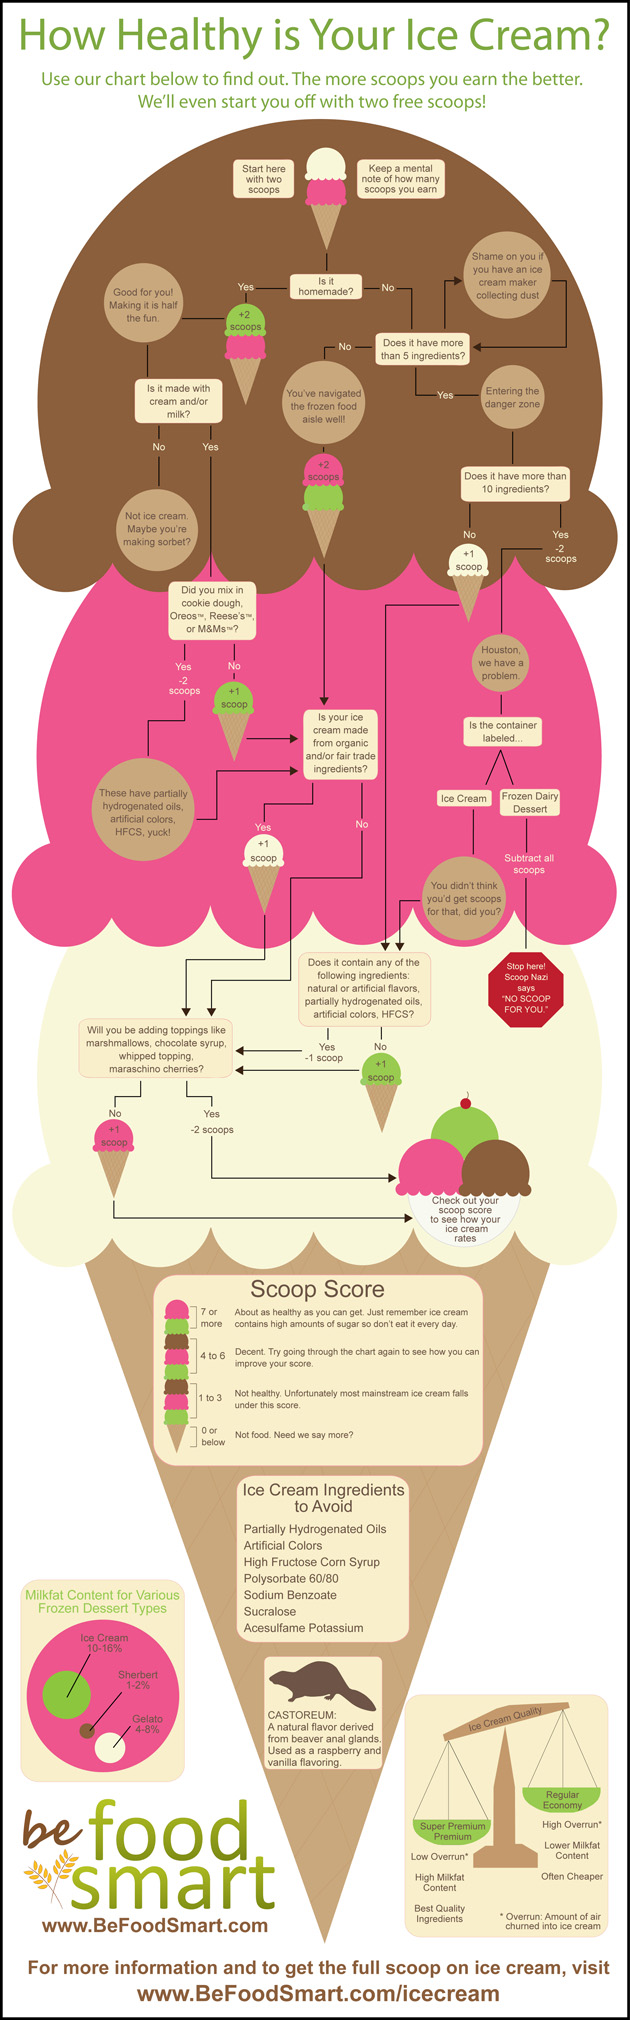 How Healthy is Your Ice Cream